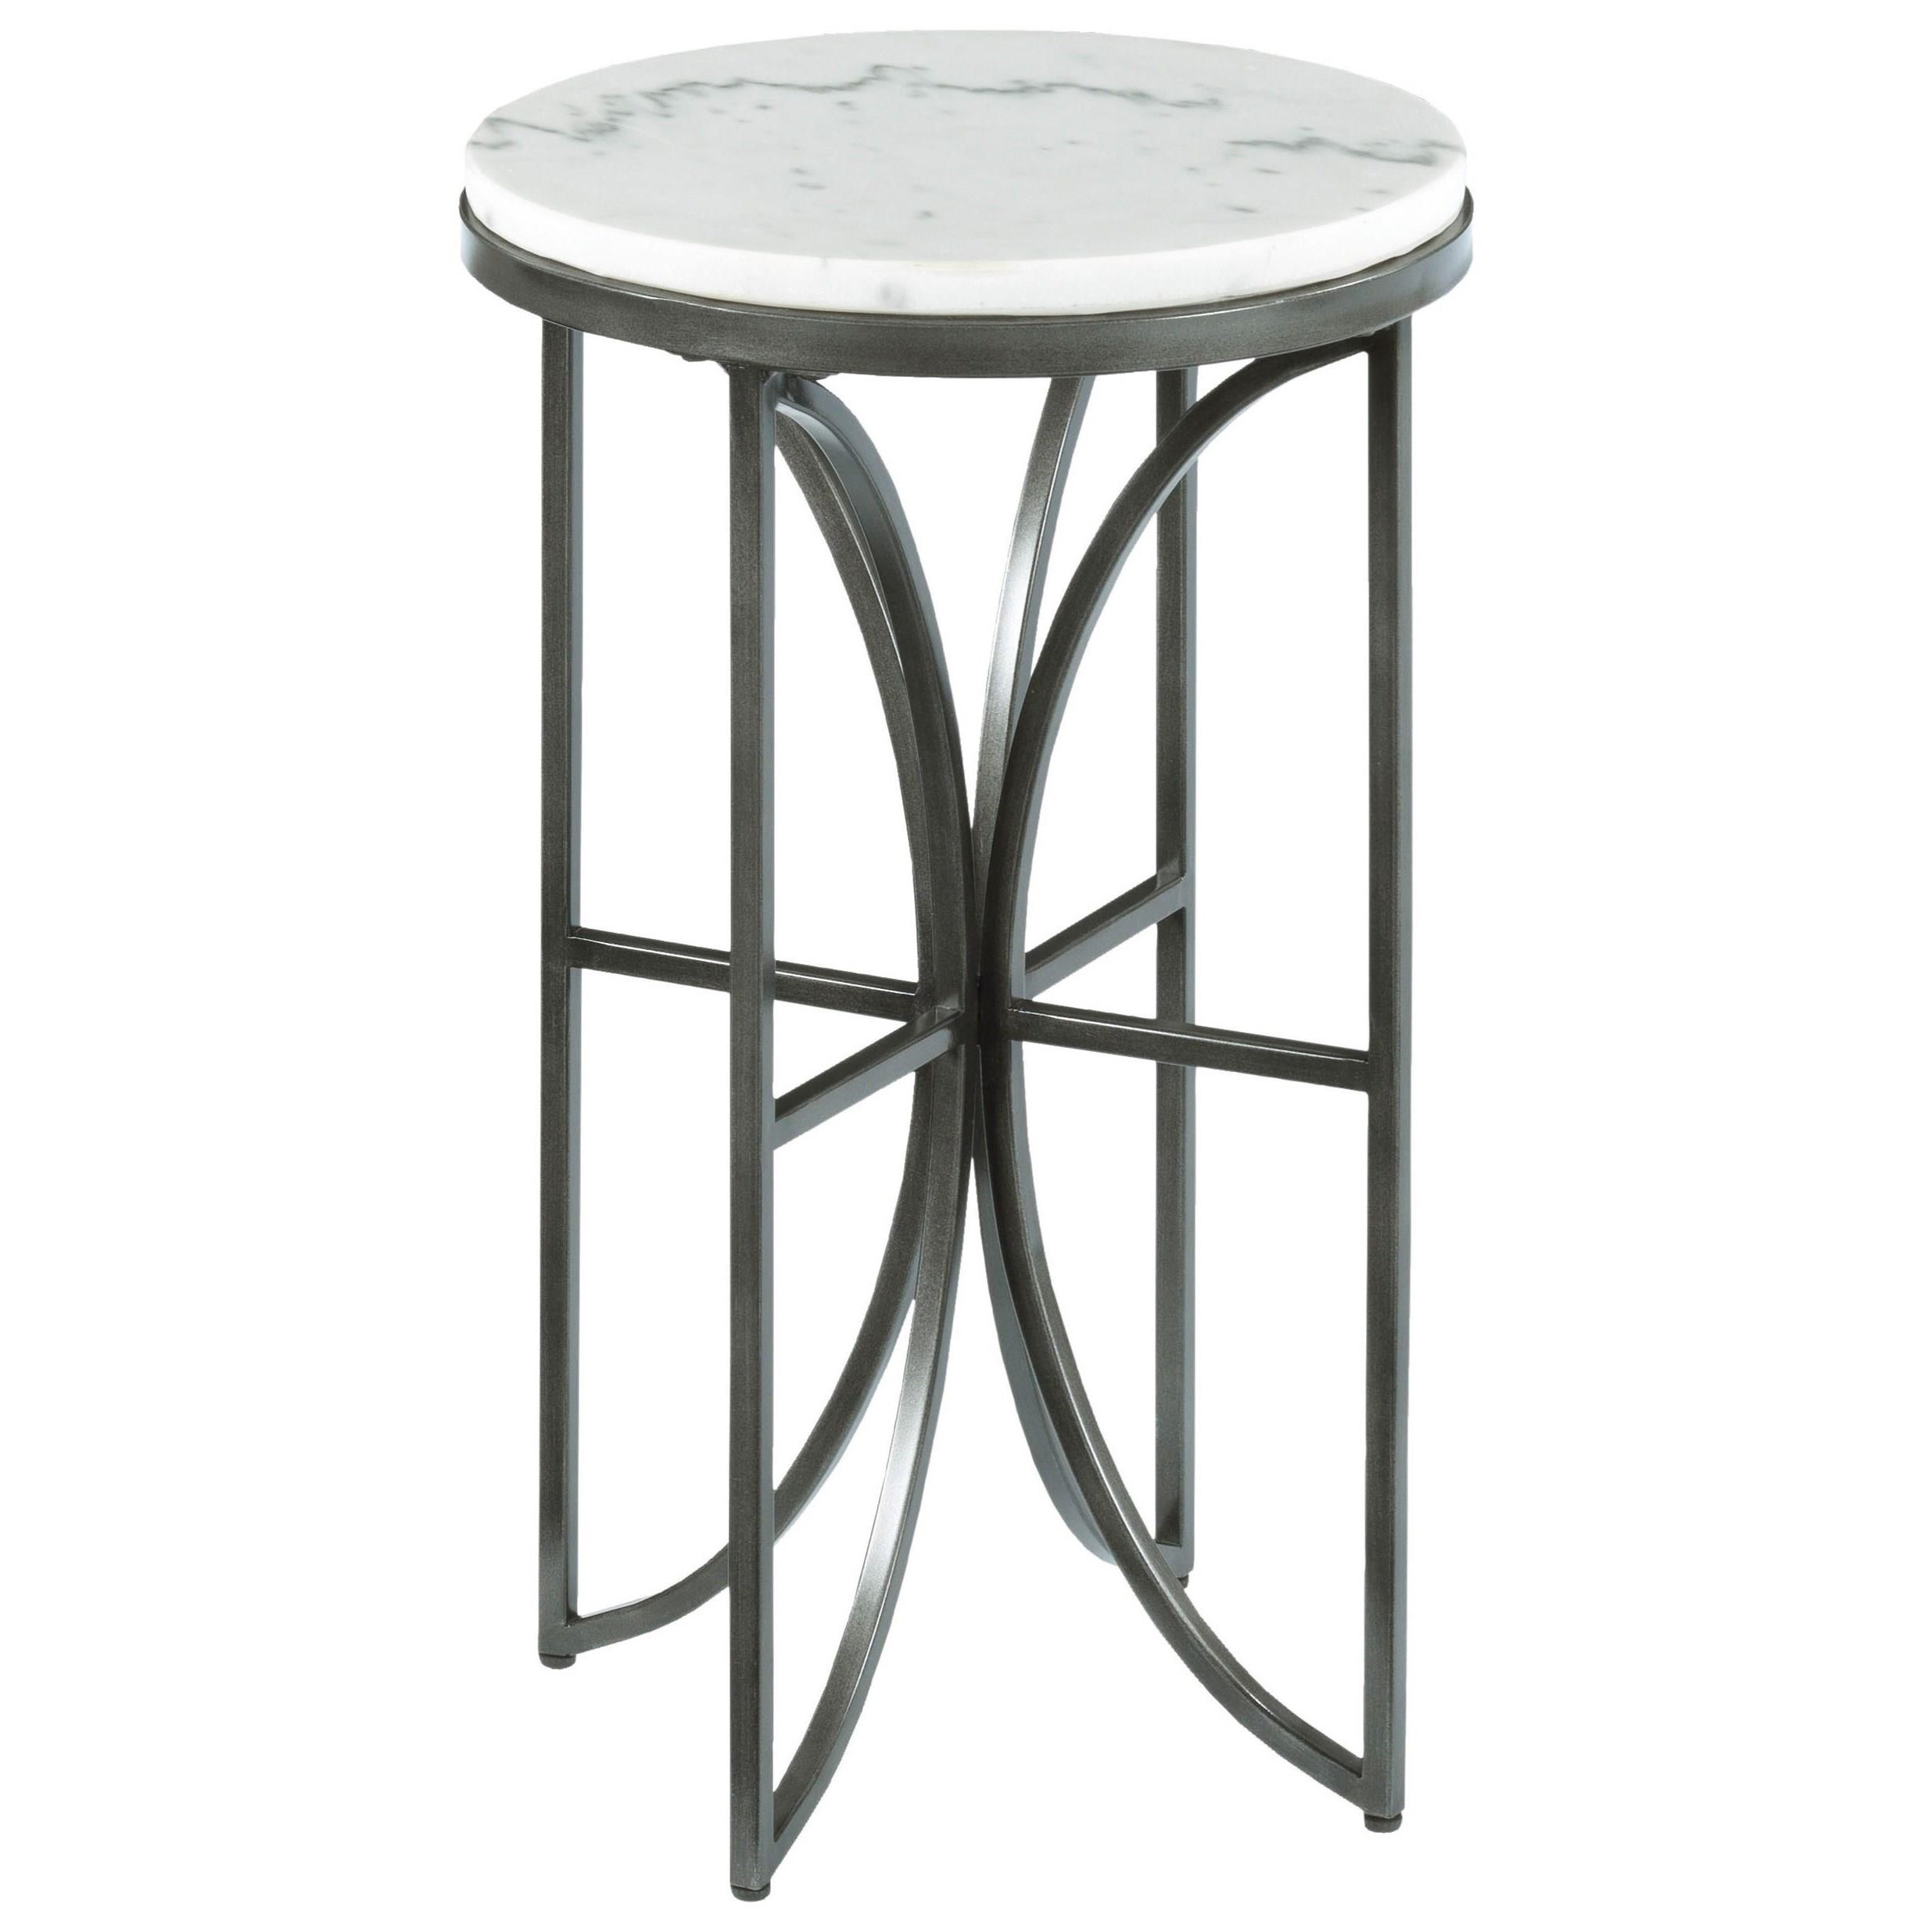 hammary impact small round accent table with marble top wayside products color white long console behind couch rustic chairside west elm stools quilted runner ideas room